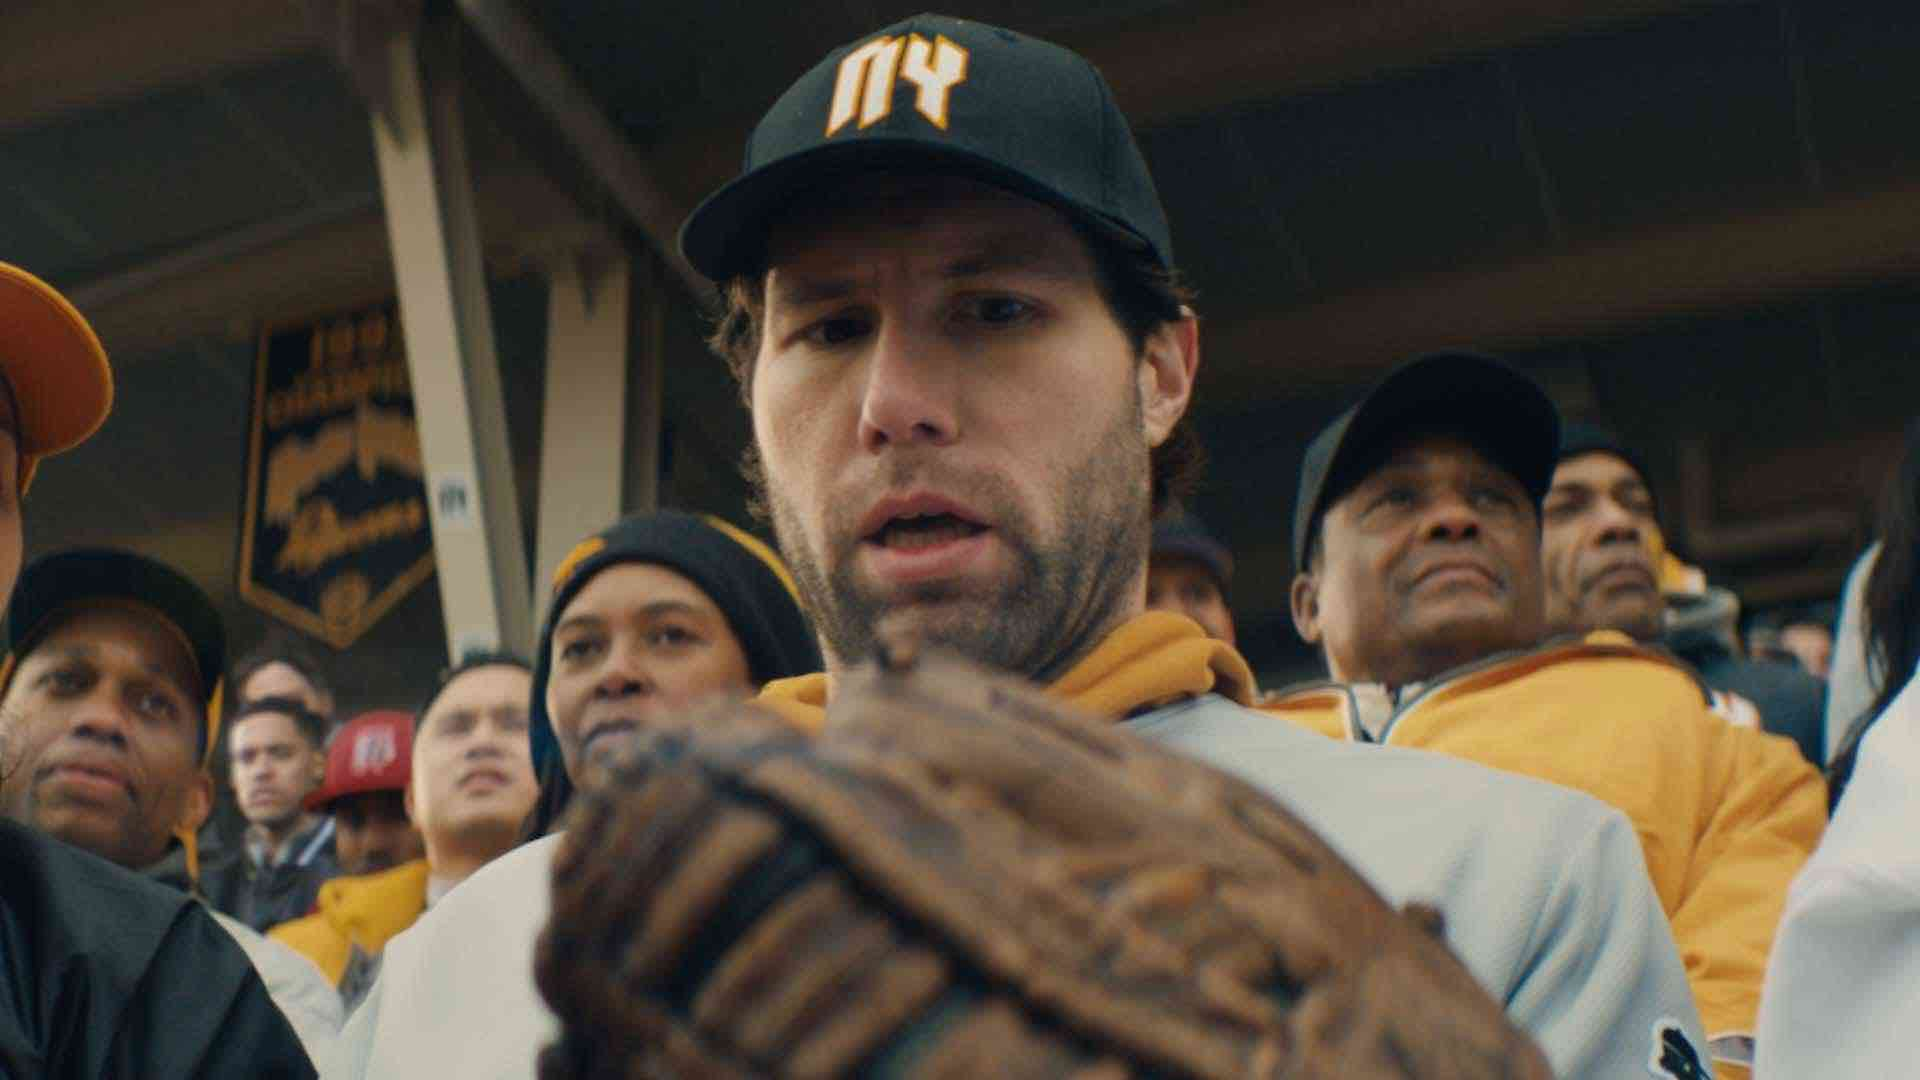 Thumbnail for a commercial for the New York Lotto called 'Glove' showing a man at a stadium holding a baseball glove.